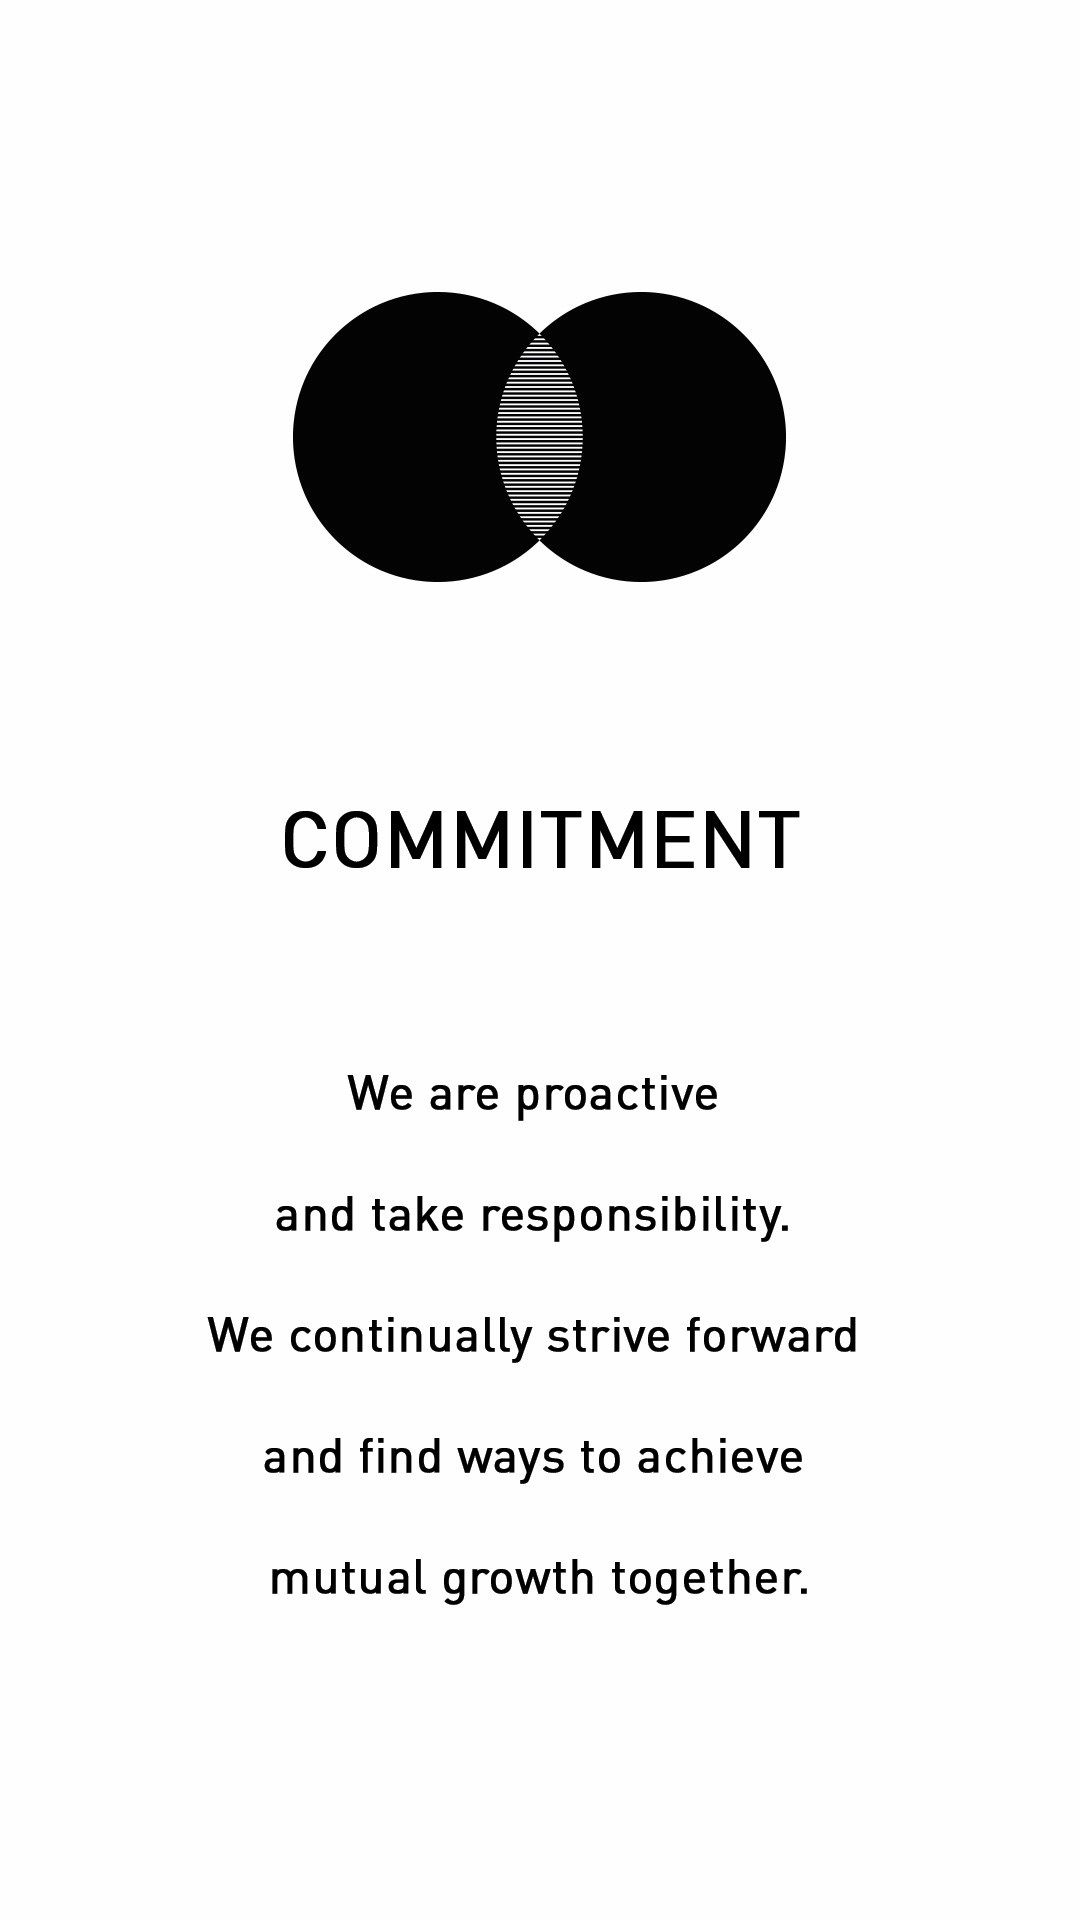 Entwurfreich Core Value Commitment